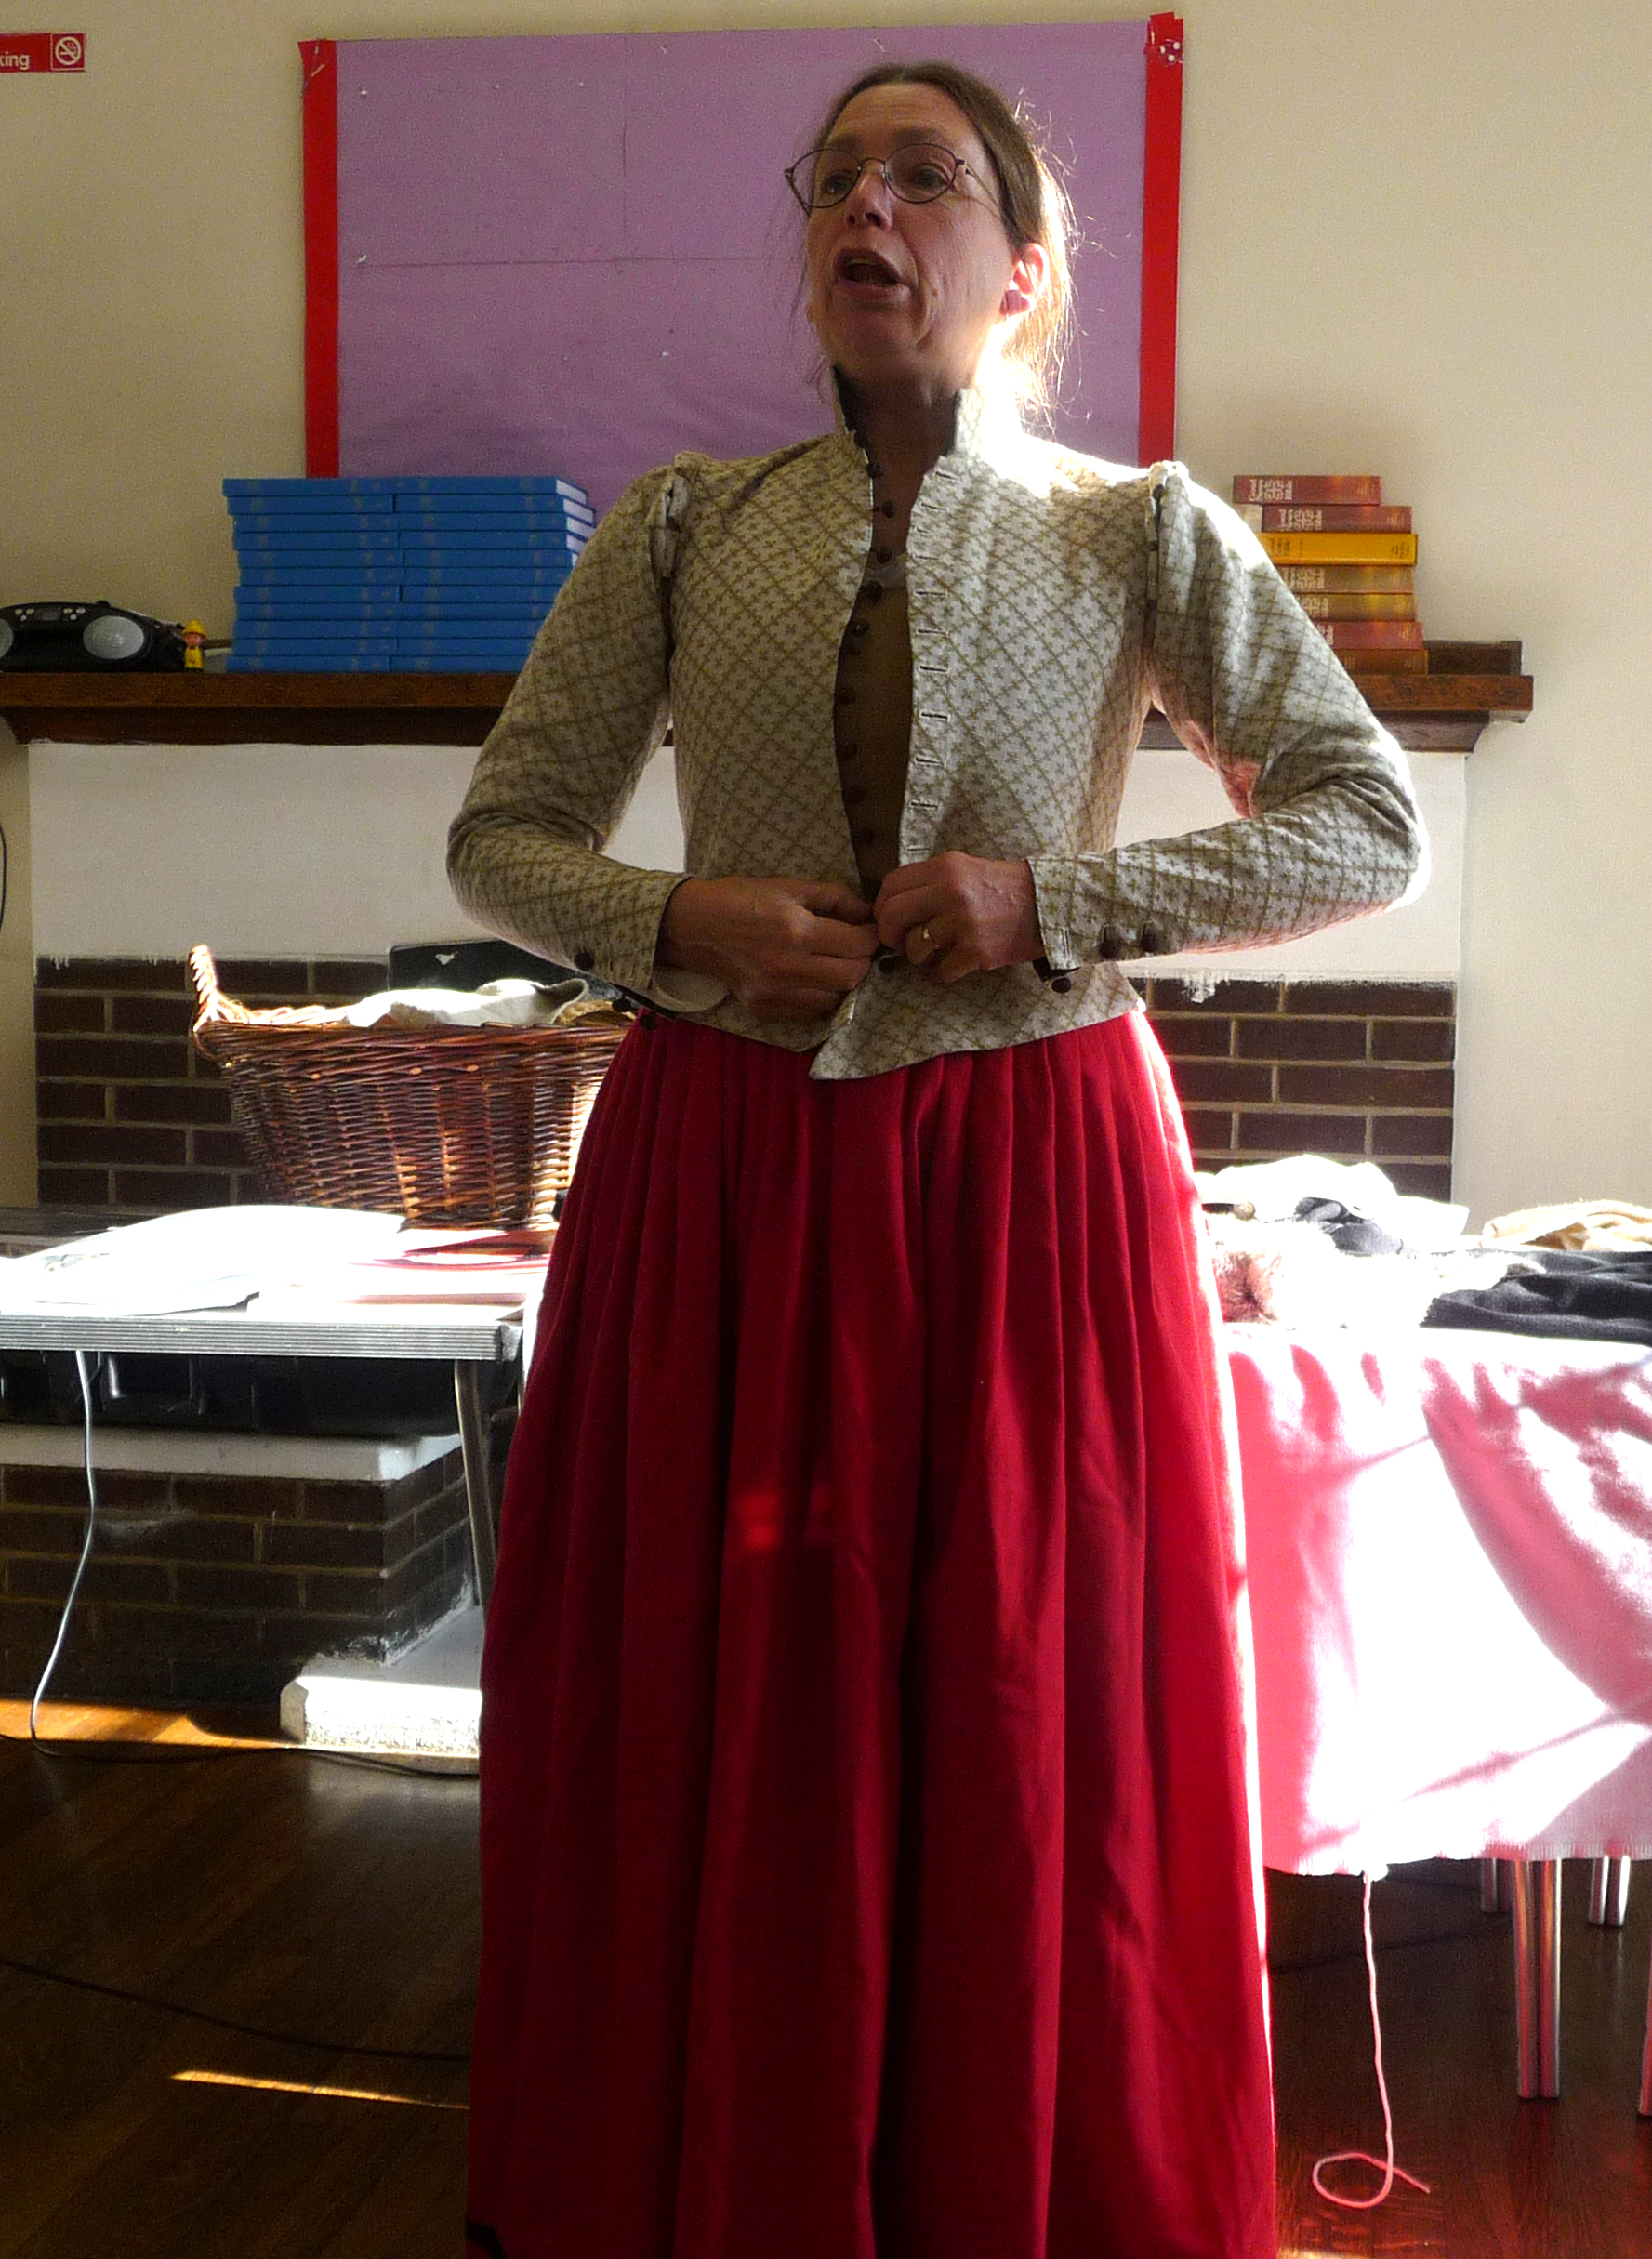 a doublet goes over the half kirtle